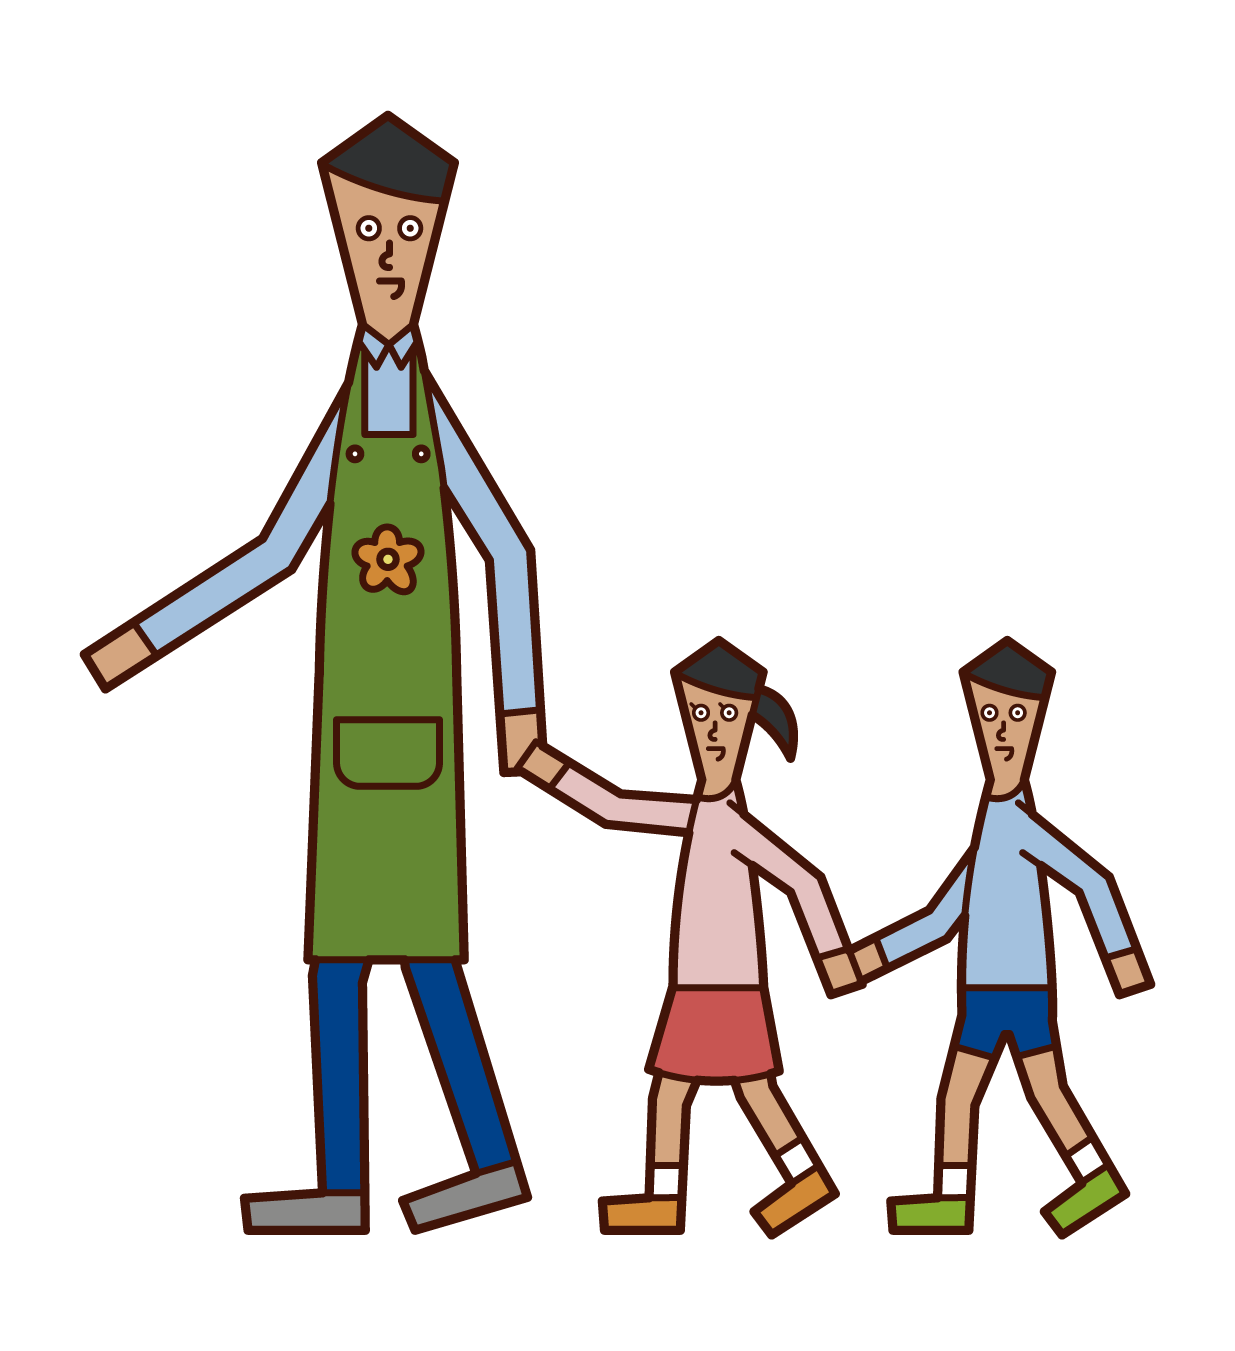 Illustration of a nursery teacher (man) taking a walk with a child